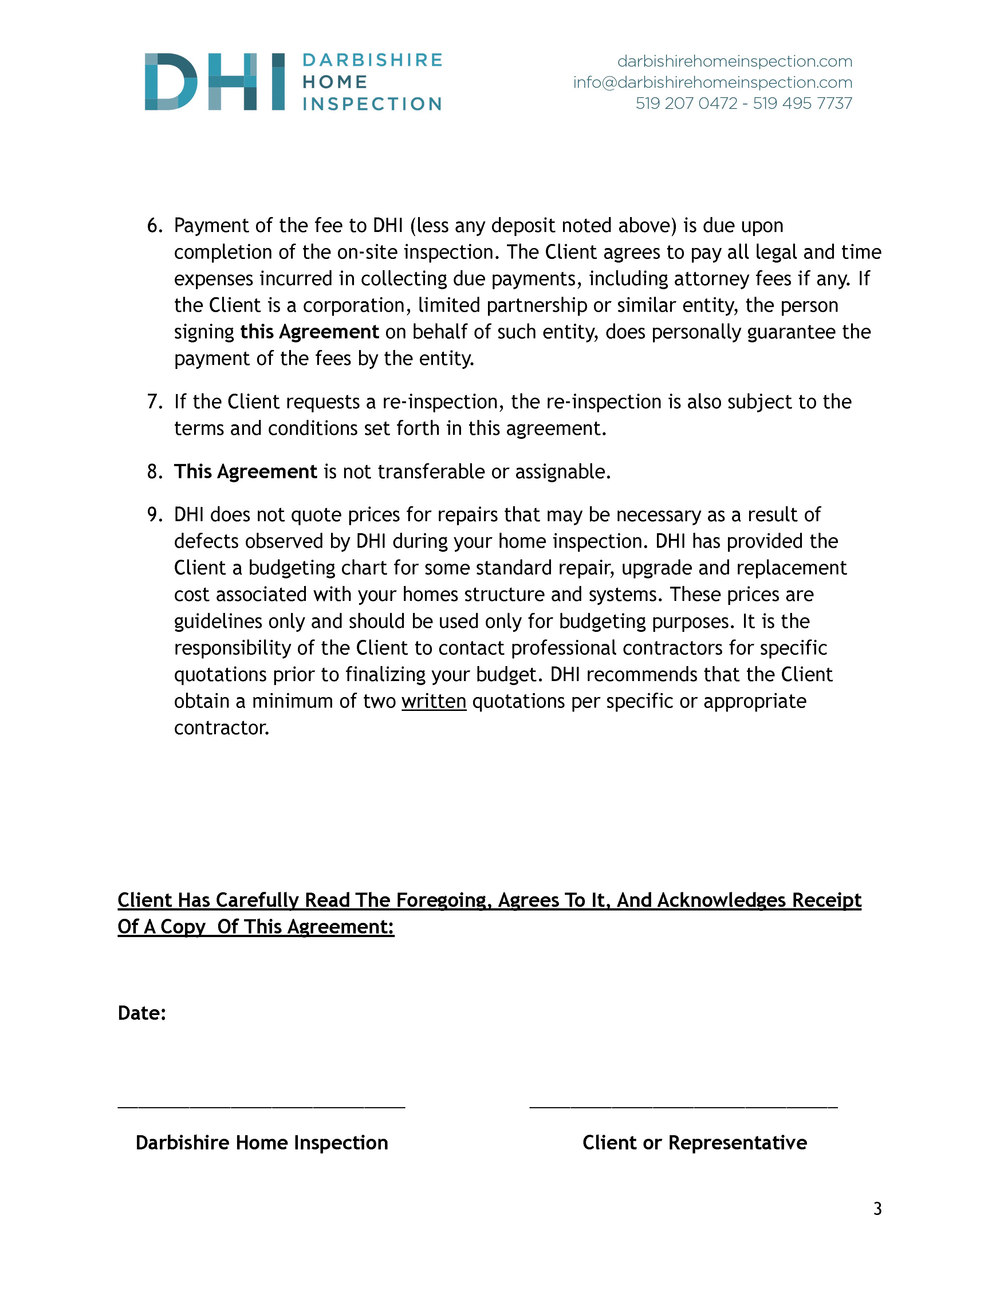 Darbishire Home Inspection Agreement_Page_3.jpg